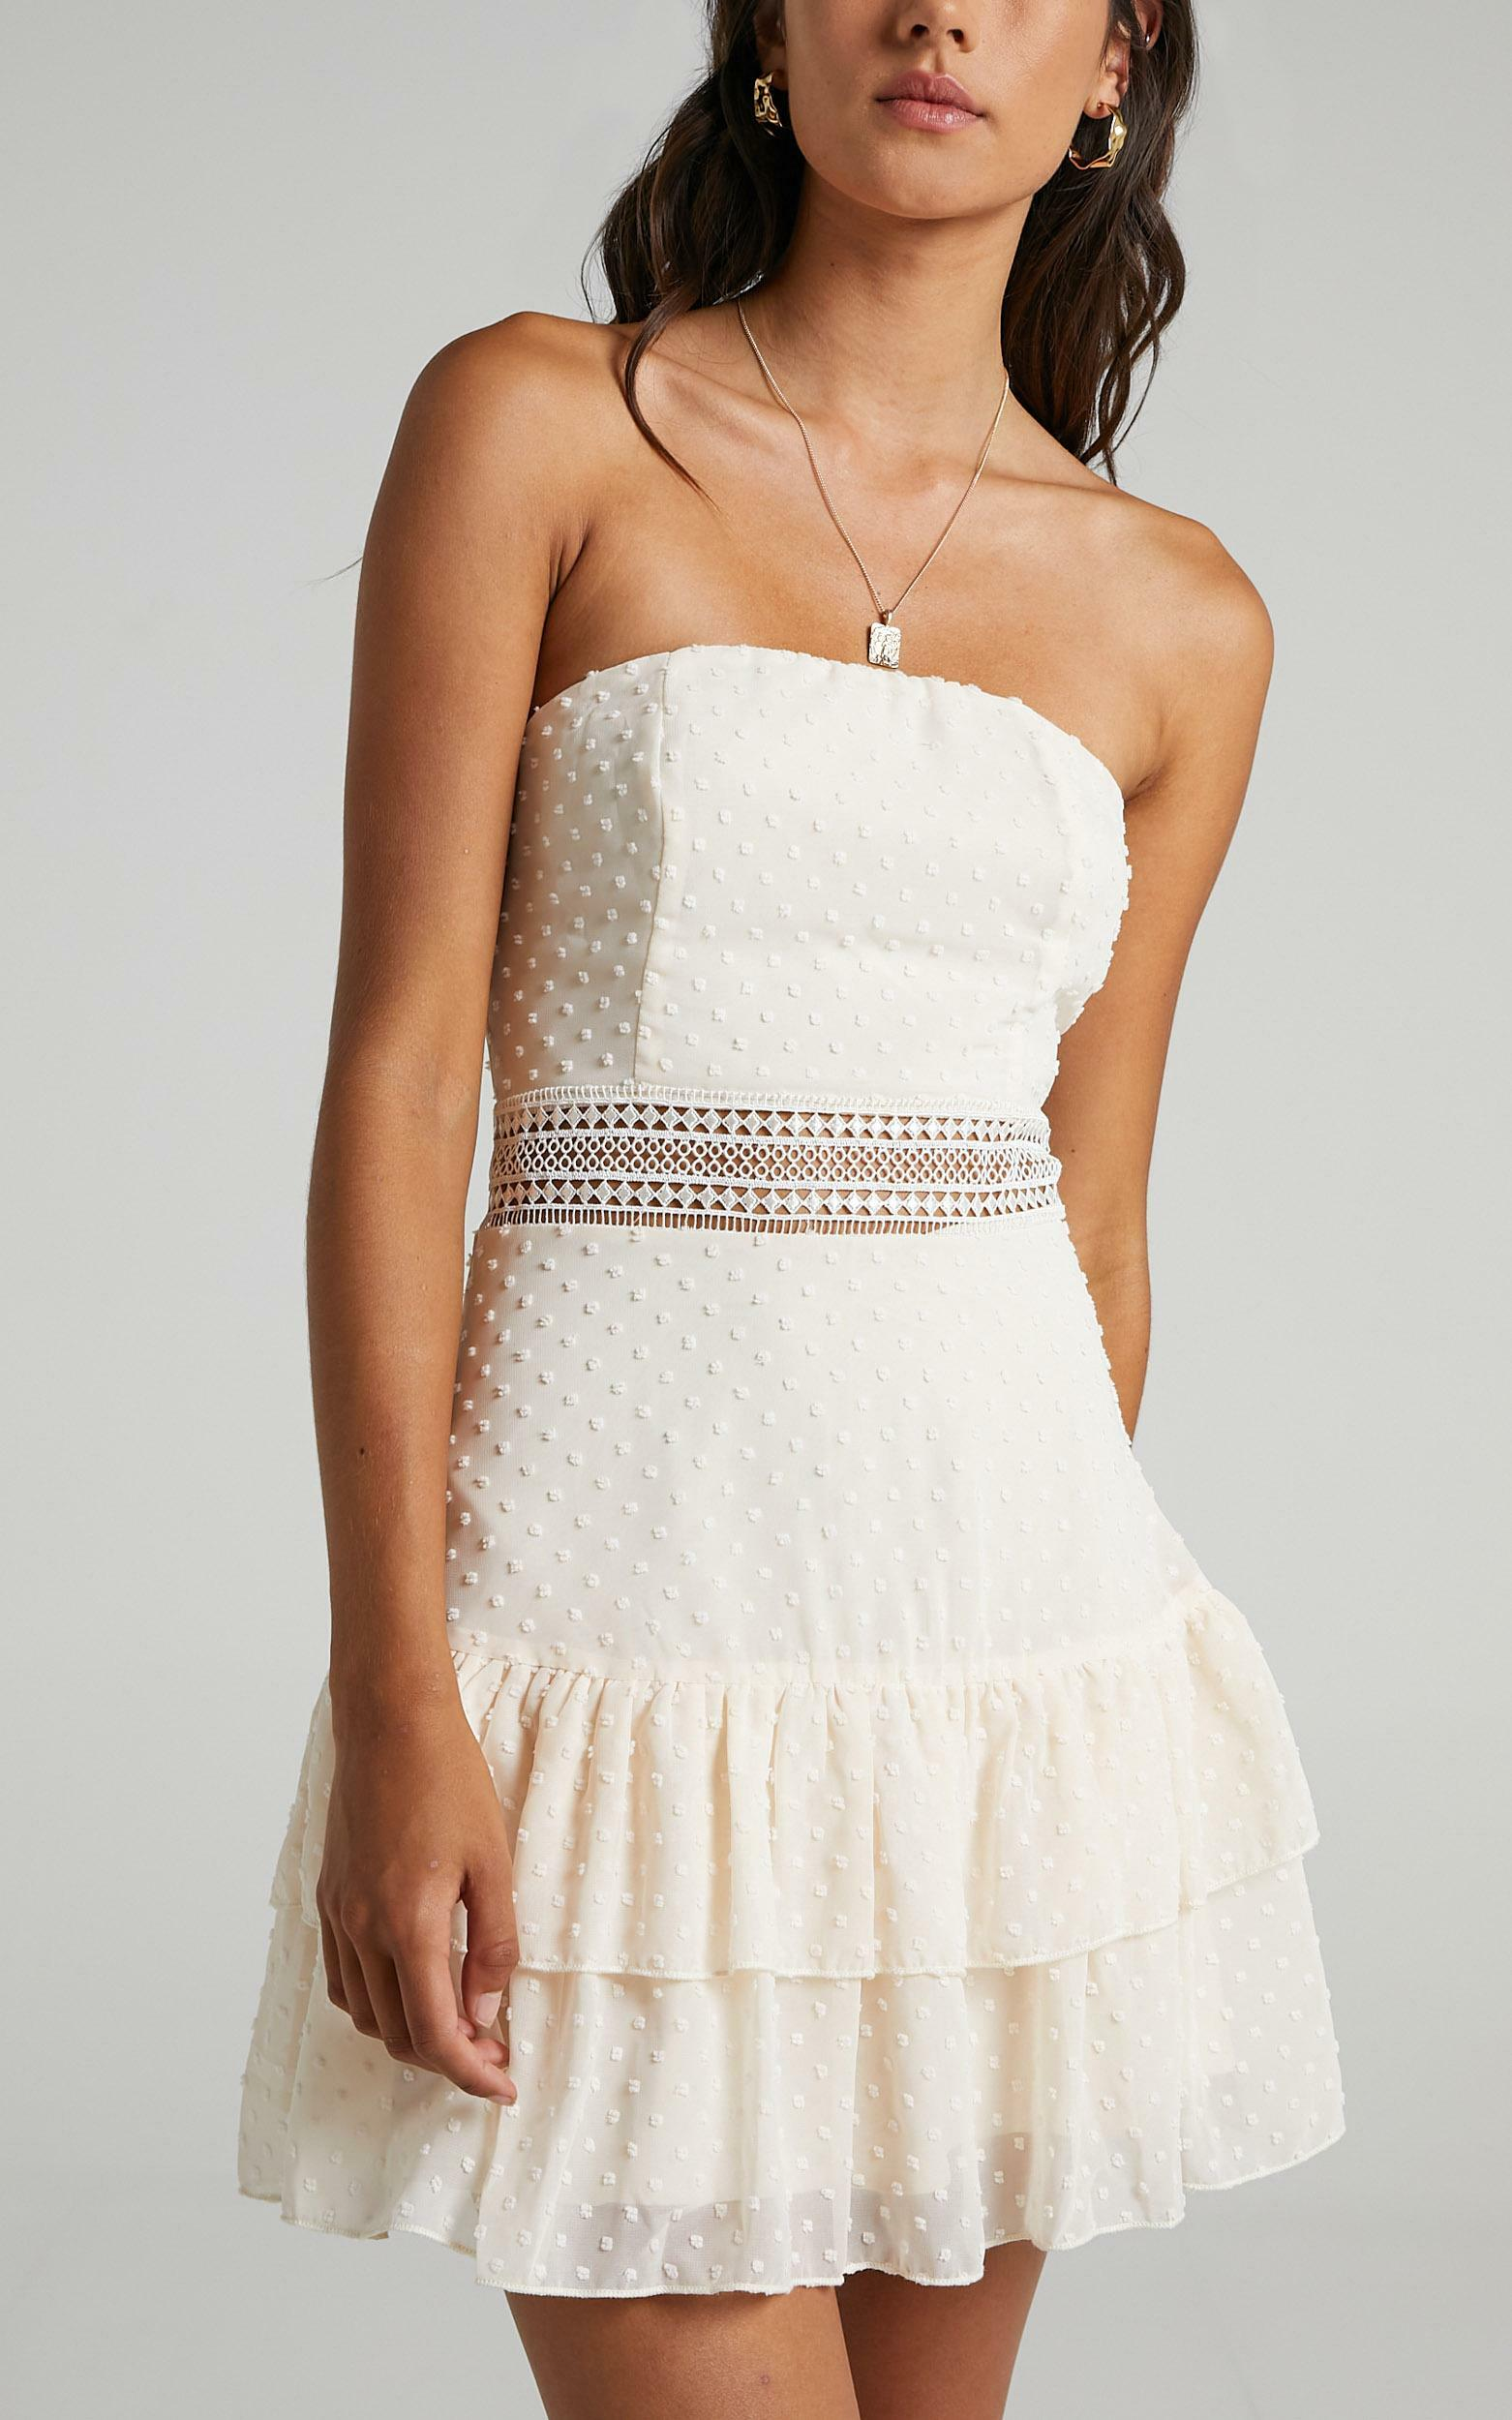 Janelle Dress in Cream - 06, CRE1, hi-res image number null